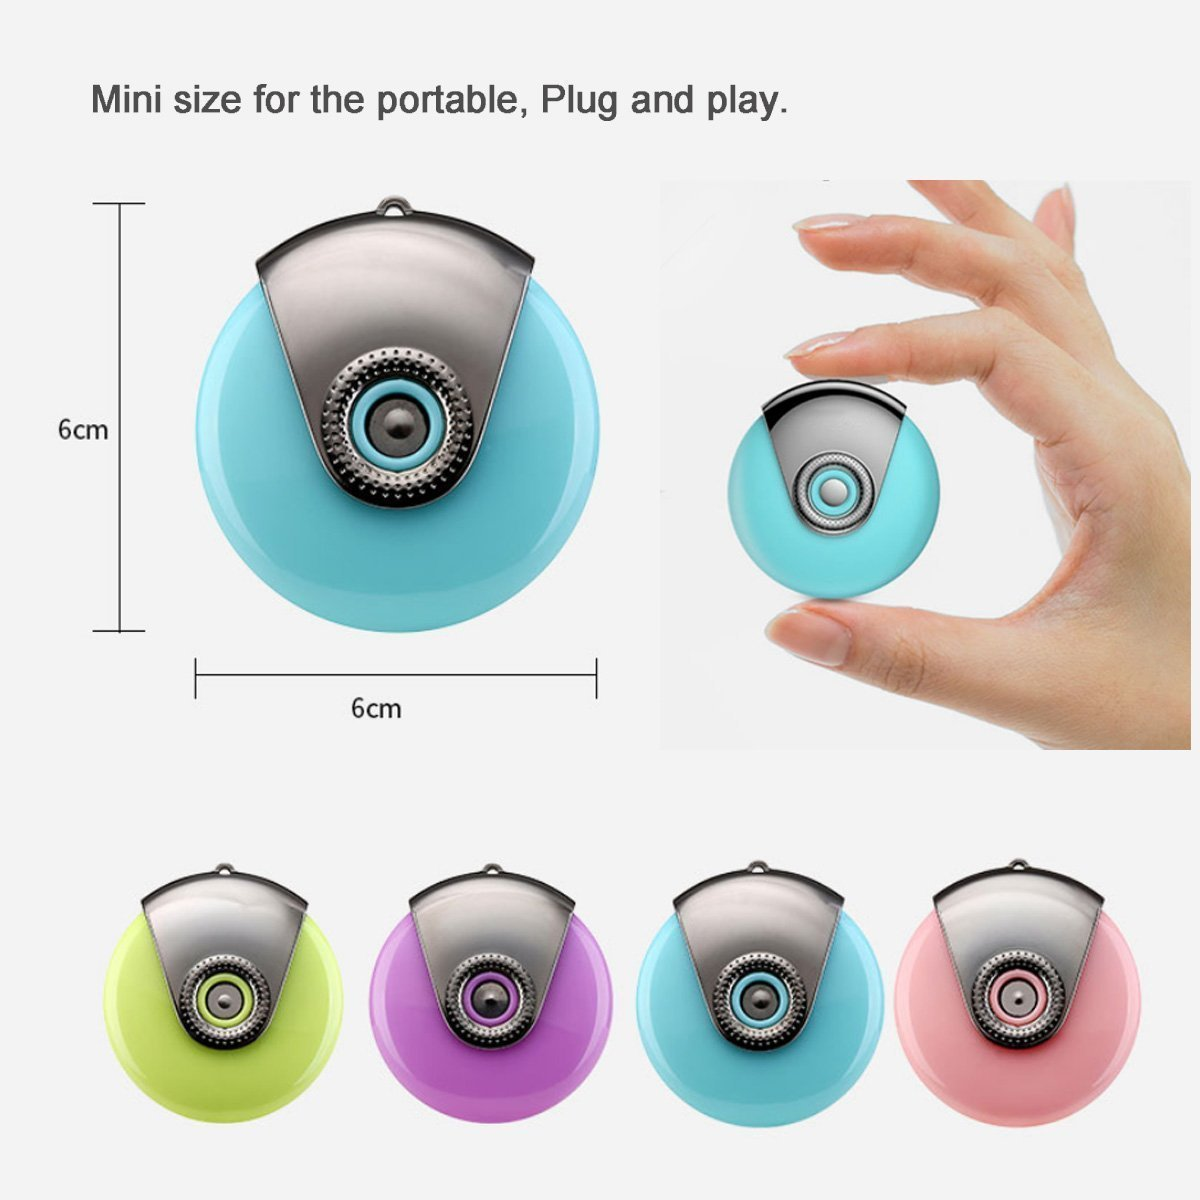 Mini facial sauna for phone,Humidifier Cell Phone Beauty Mist Spray Diffuser, Portable Mobile Phone Filling Water Meter for iPhone7/7plus/ 5/5s/5c/6/6s Plus/SE (Blue)